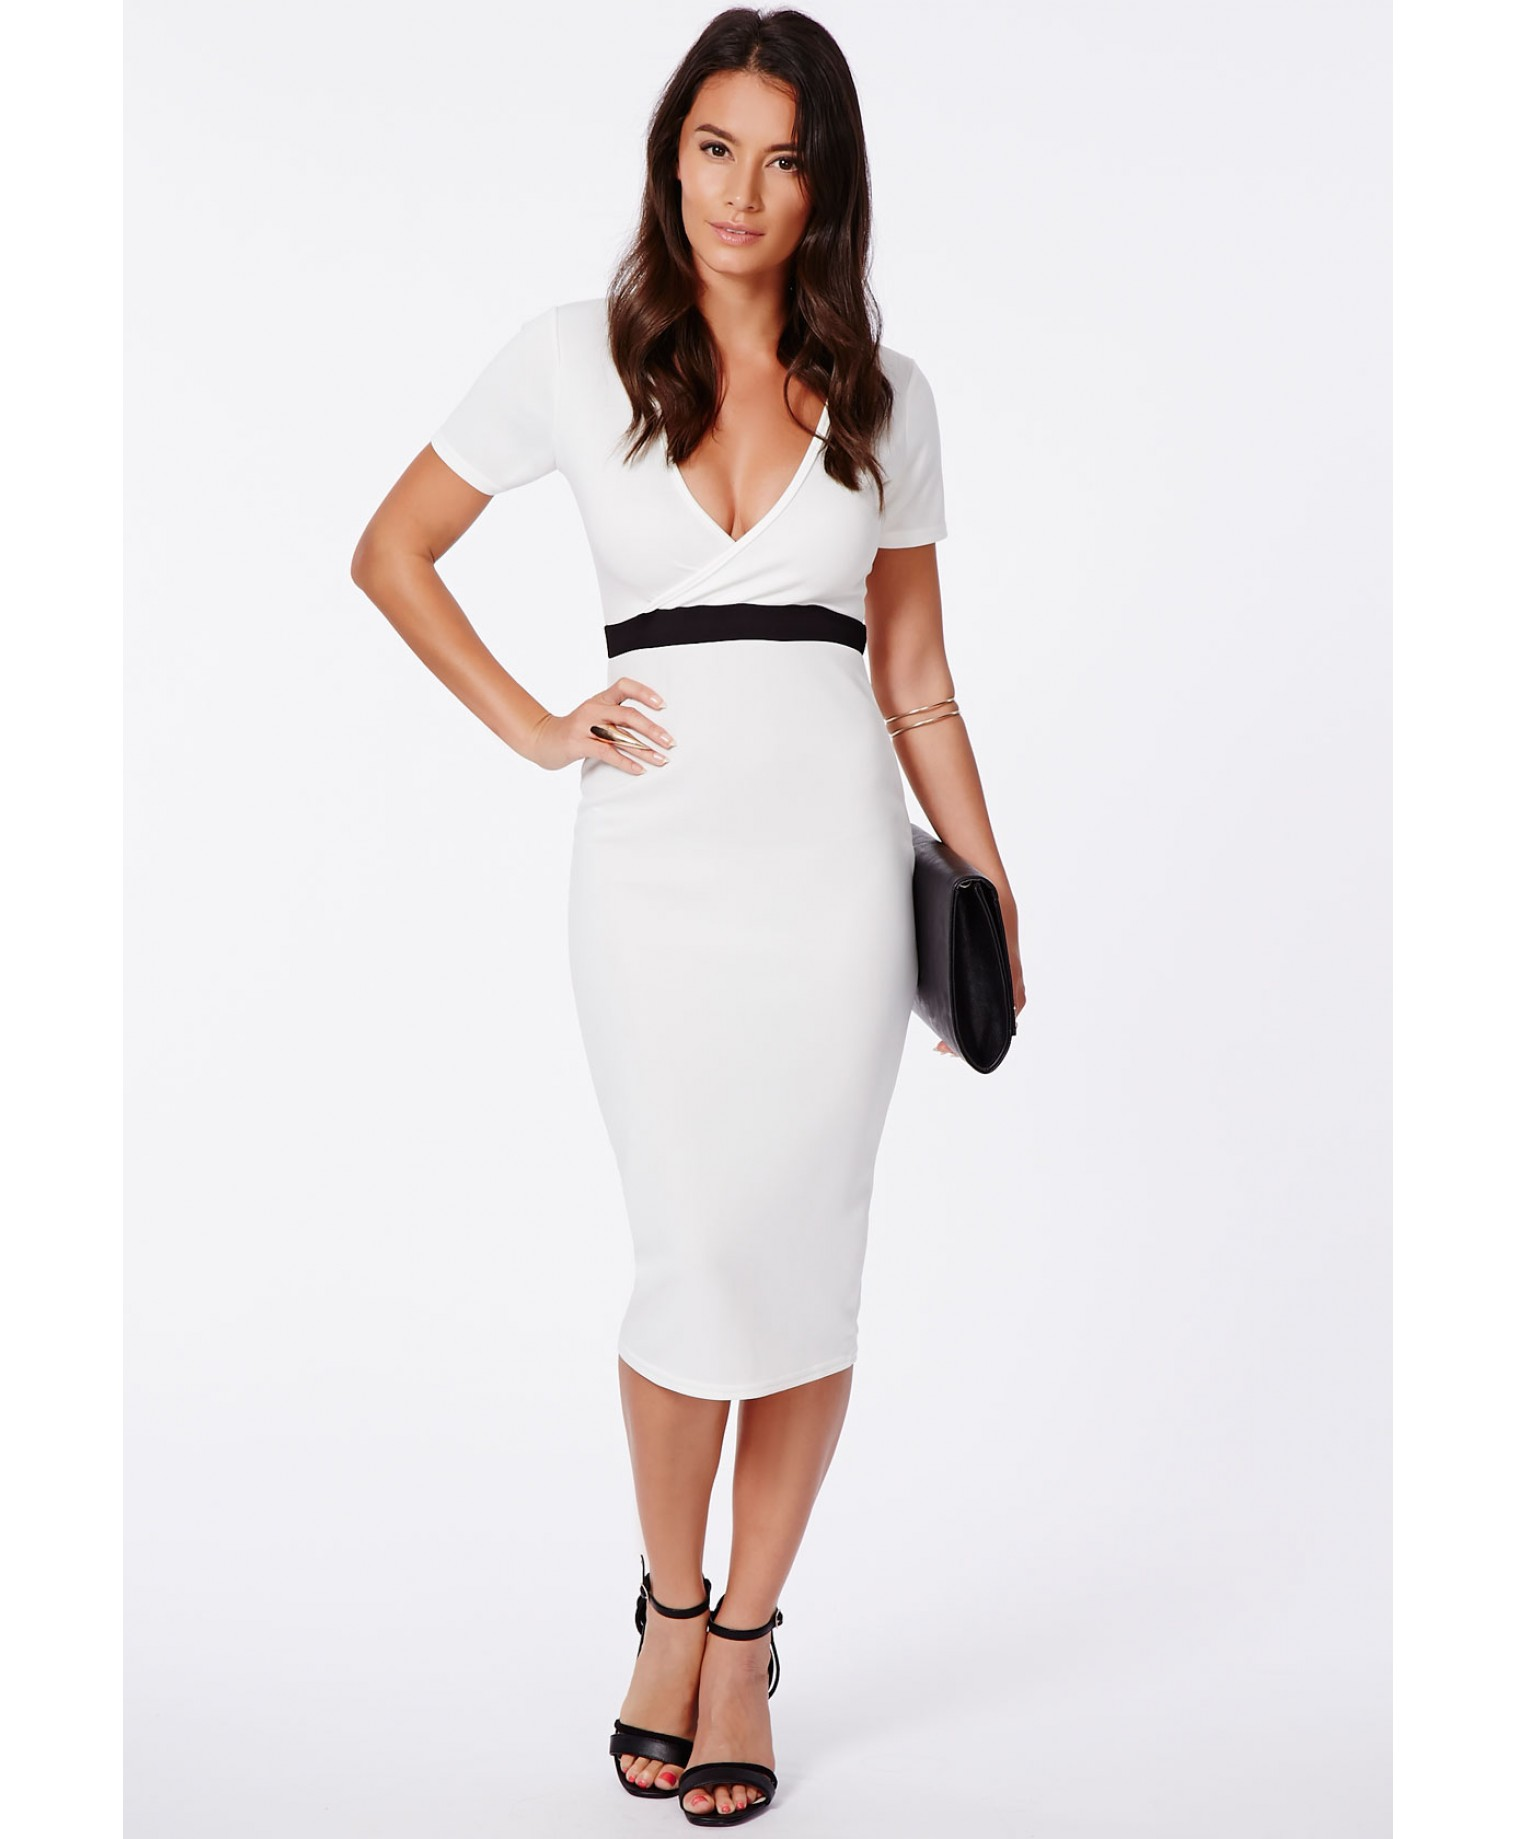 Verda wrap over monochrome contrast midi dress